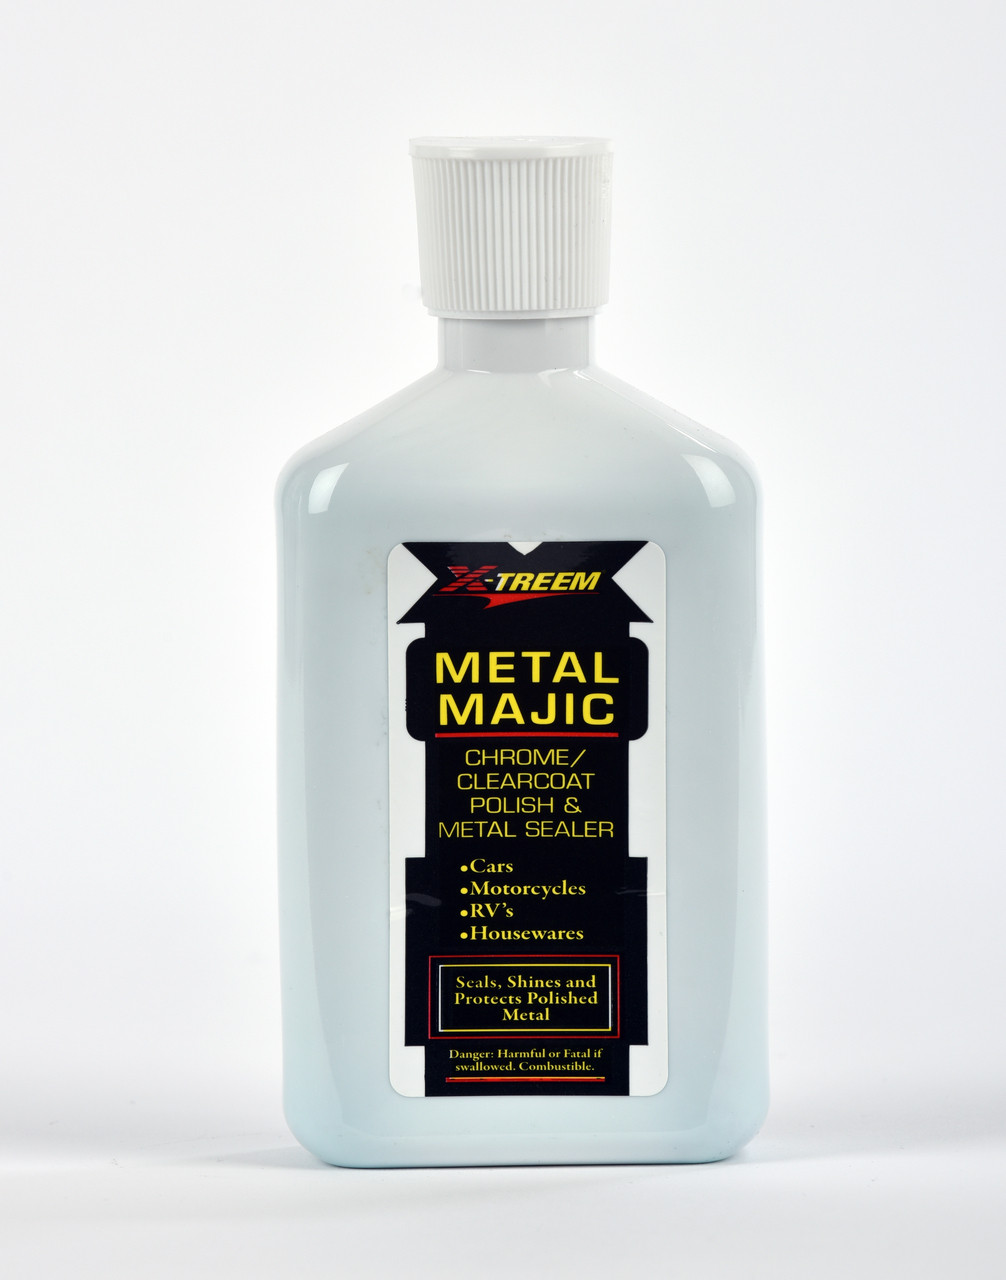 Metal Majic provides the finishing touch on clear coated and painted surfaces. Removes fallout, light surface contamination and water spots while restoring gloss. It will even remove metallic brake dust that bonds to your painted, clear coated or chrome wheels!